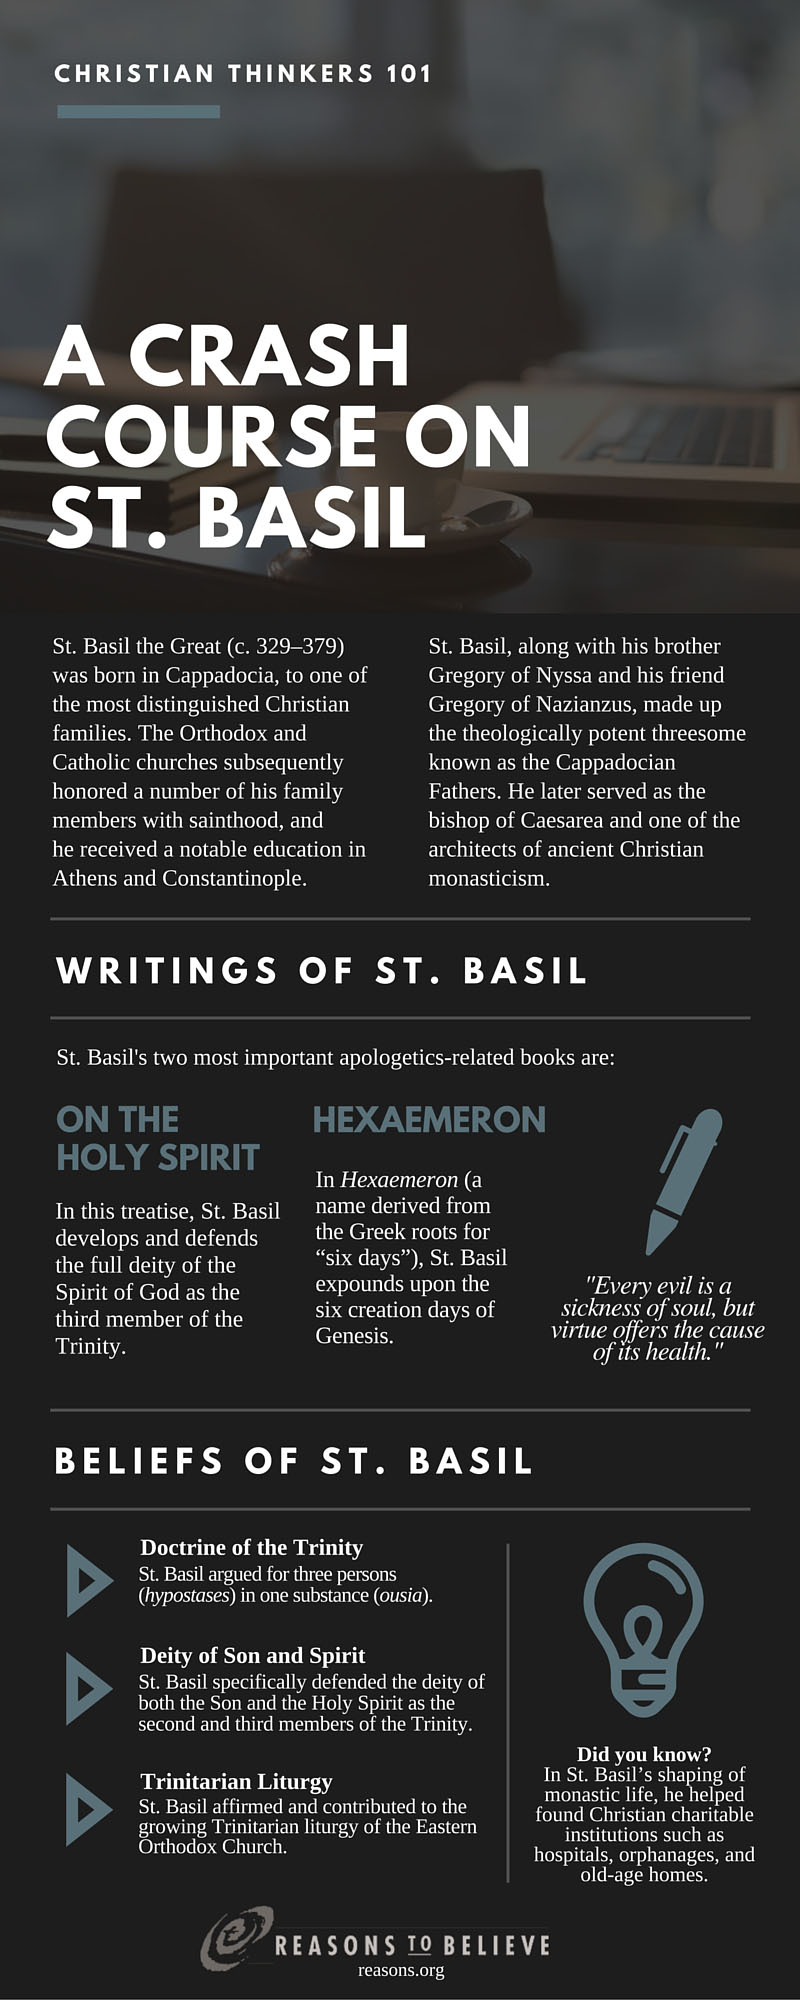 blog__inline--christian-thinkers-101-a-crash-course-on-st-basil2